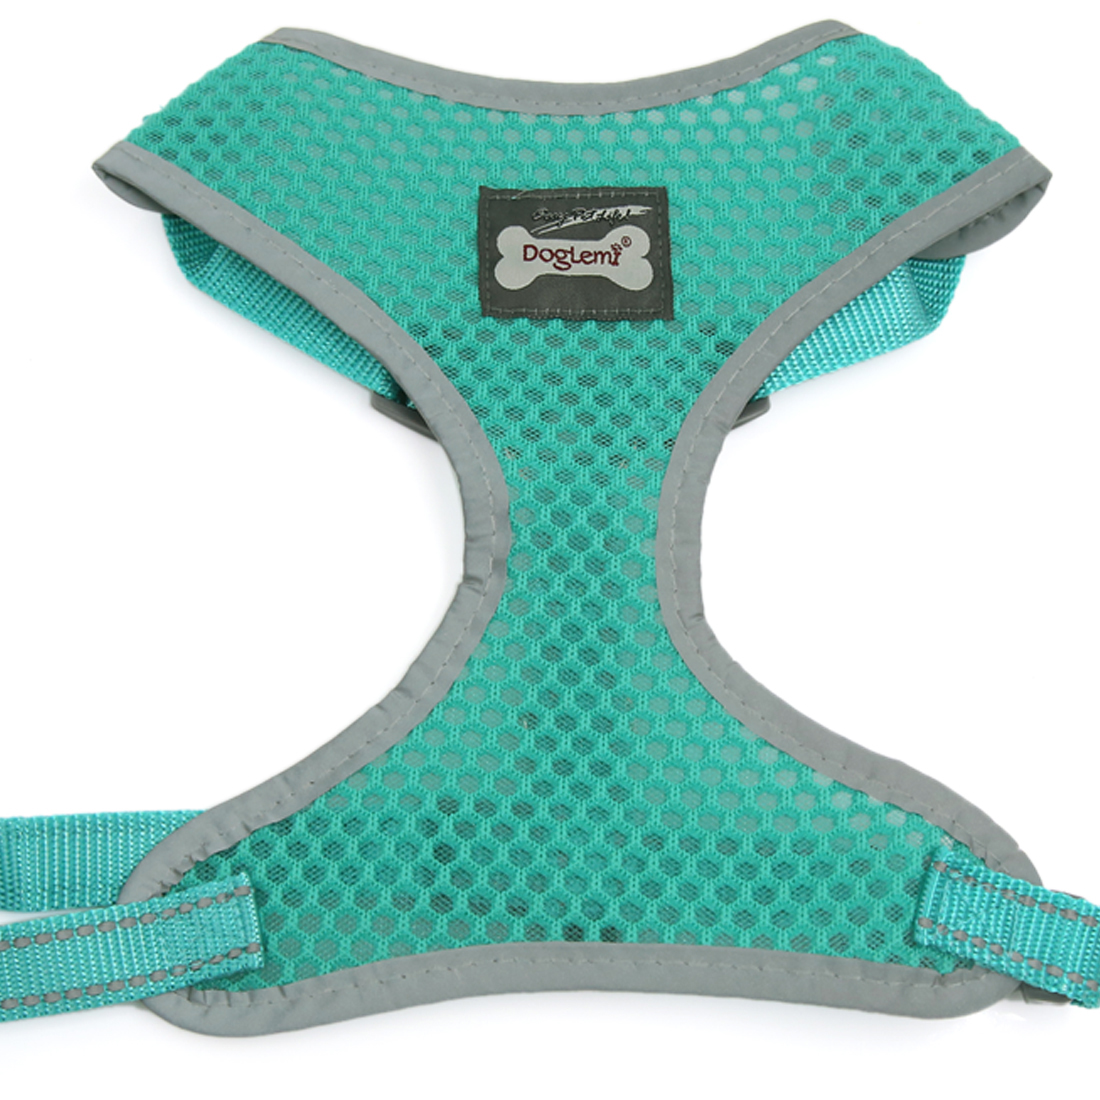 Comfort Control Dog Harness Adjustable Breathable Soft Air Mesh Puppy Harnesses Walk Collar Reflective Vest Green M